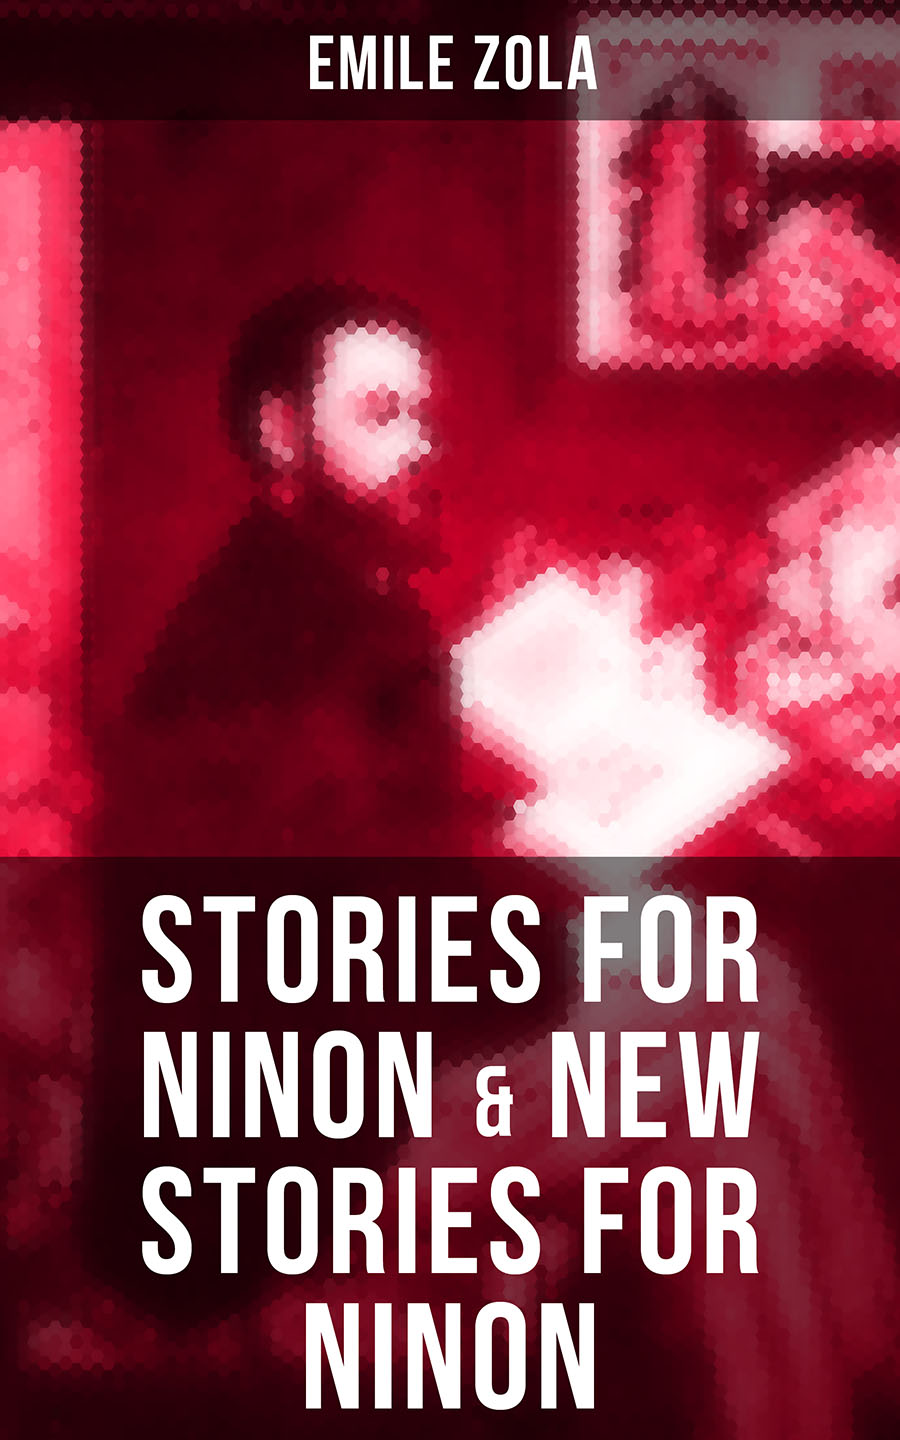 Emile Zola STORIES FOR NINON & NEW STORIES FOR NINON эмиль золя four short stories by emile zola